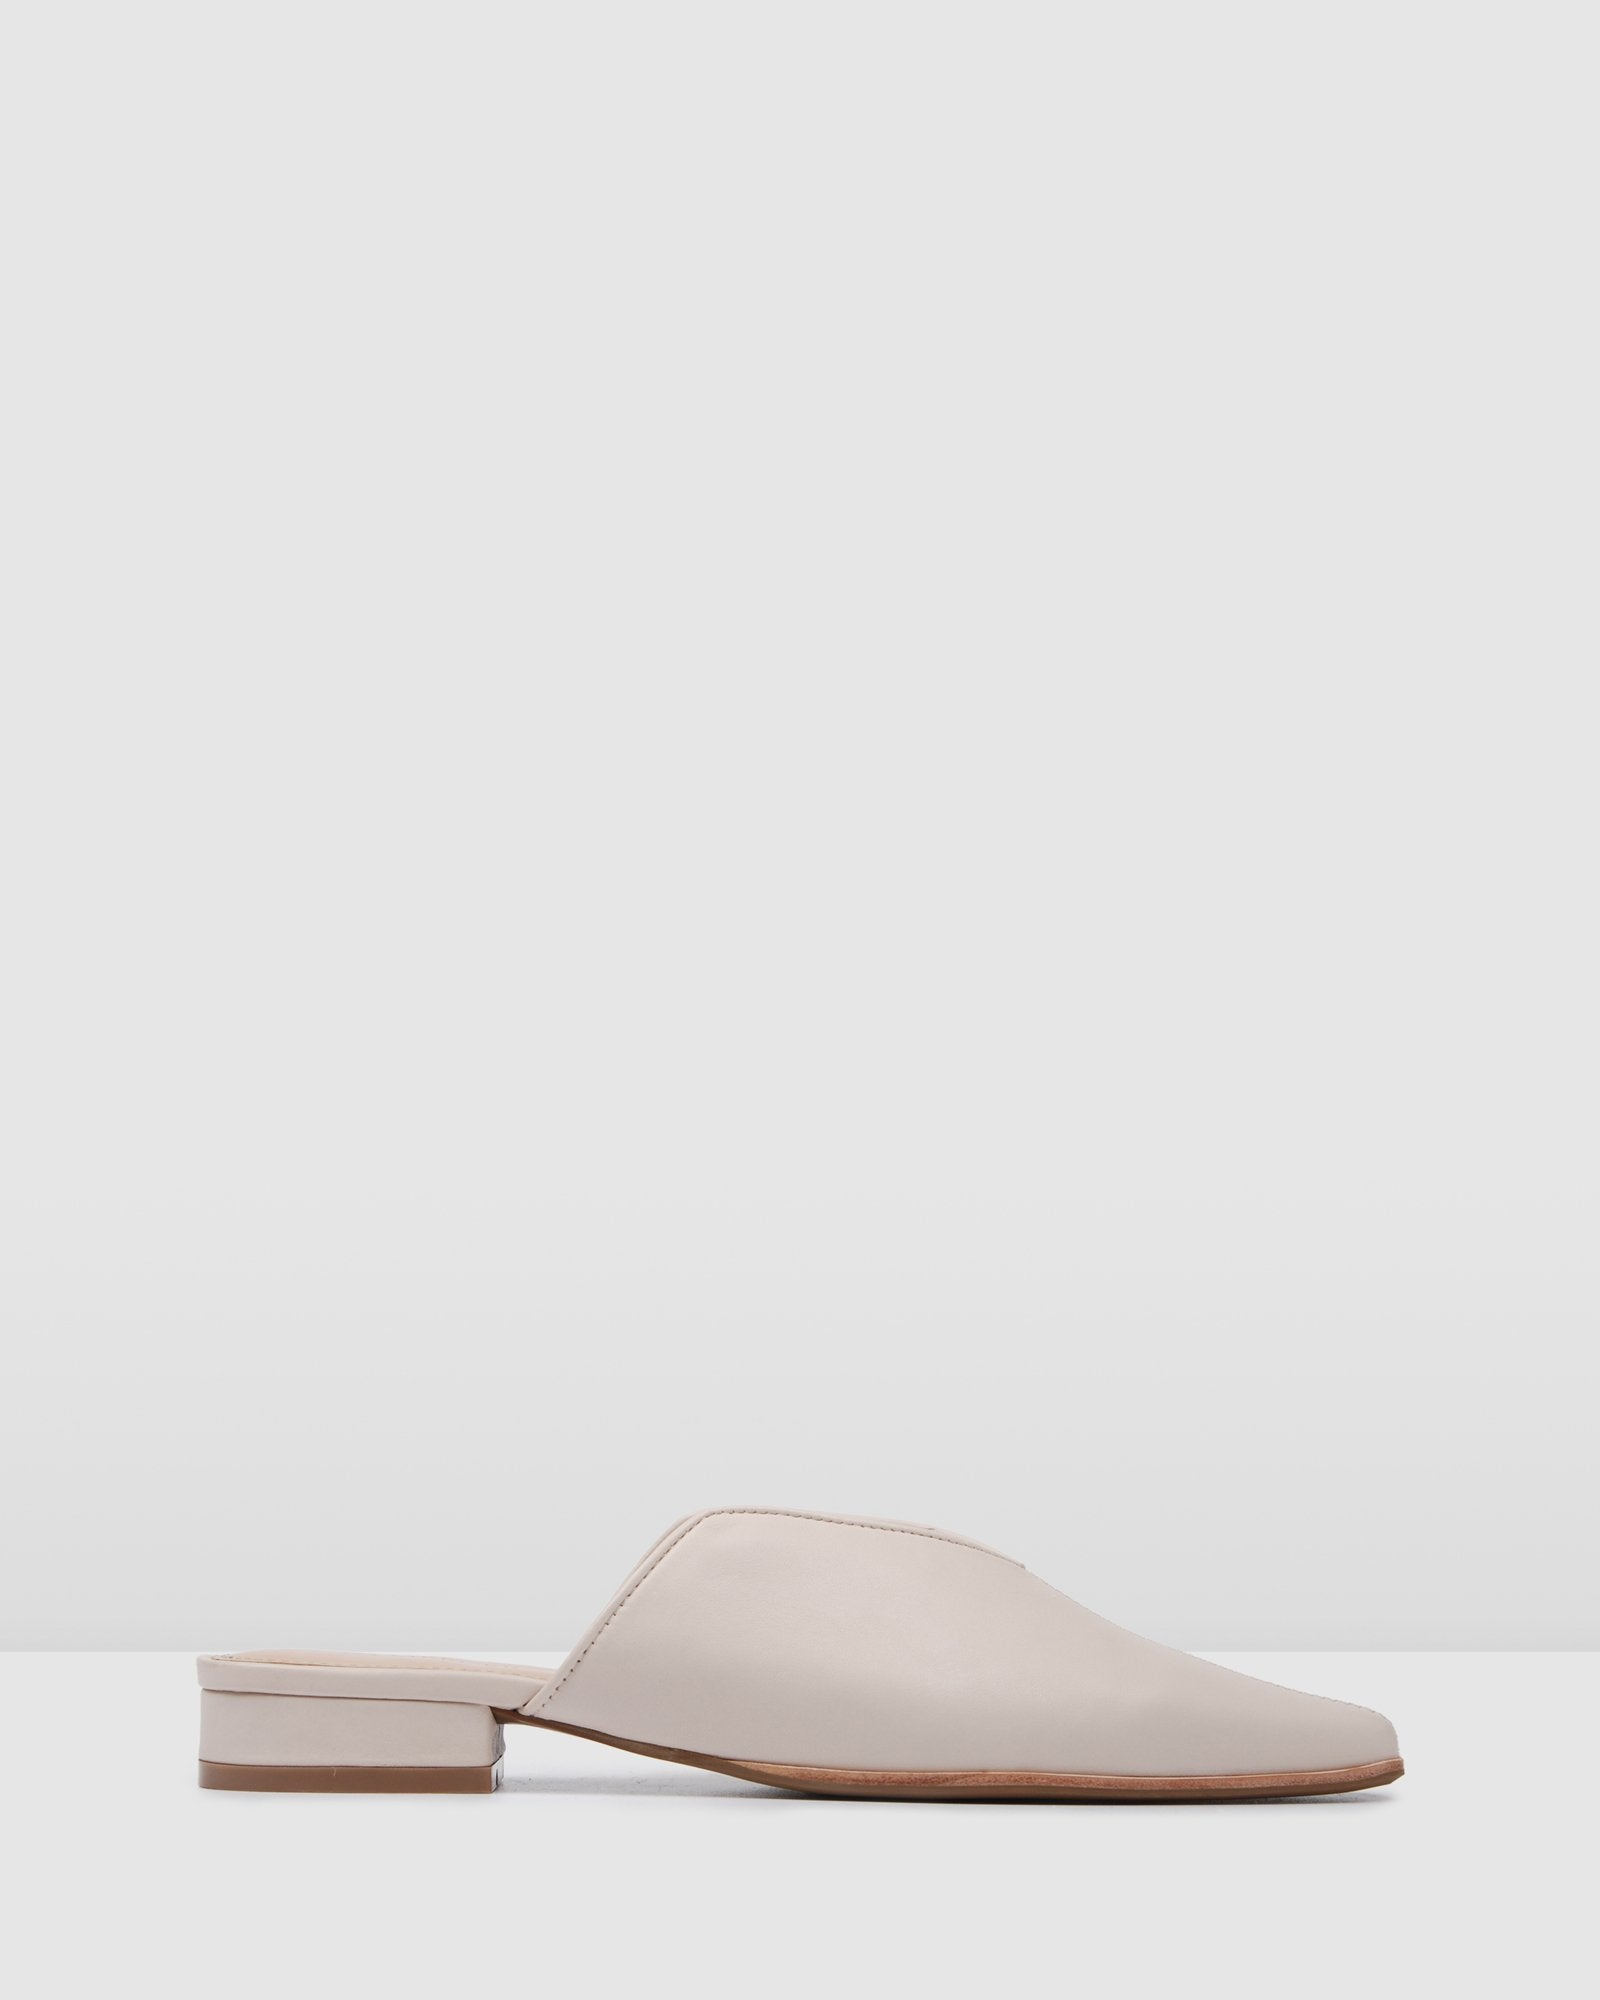 PIGALLE DRESS FLATS BONE LEATHER